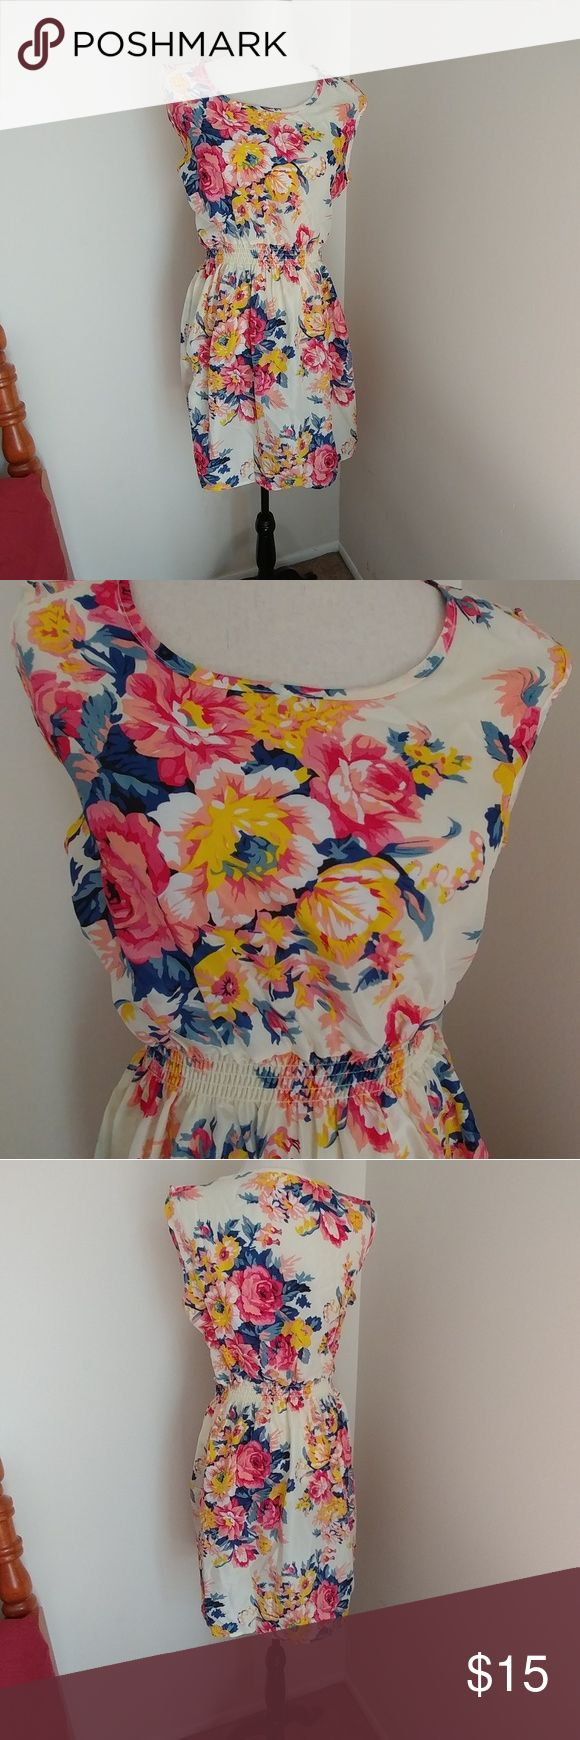 "Plus size sheer floral dress Excellent pre-owned condition. Unlined. Elastic waist. Measures 18.5"" across chest and 36"" from shoulder to hem. Dresses"